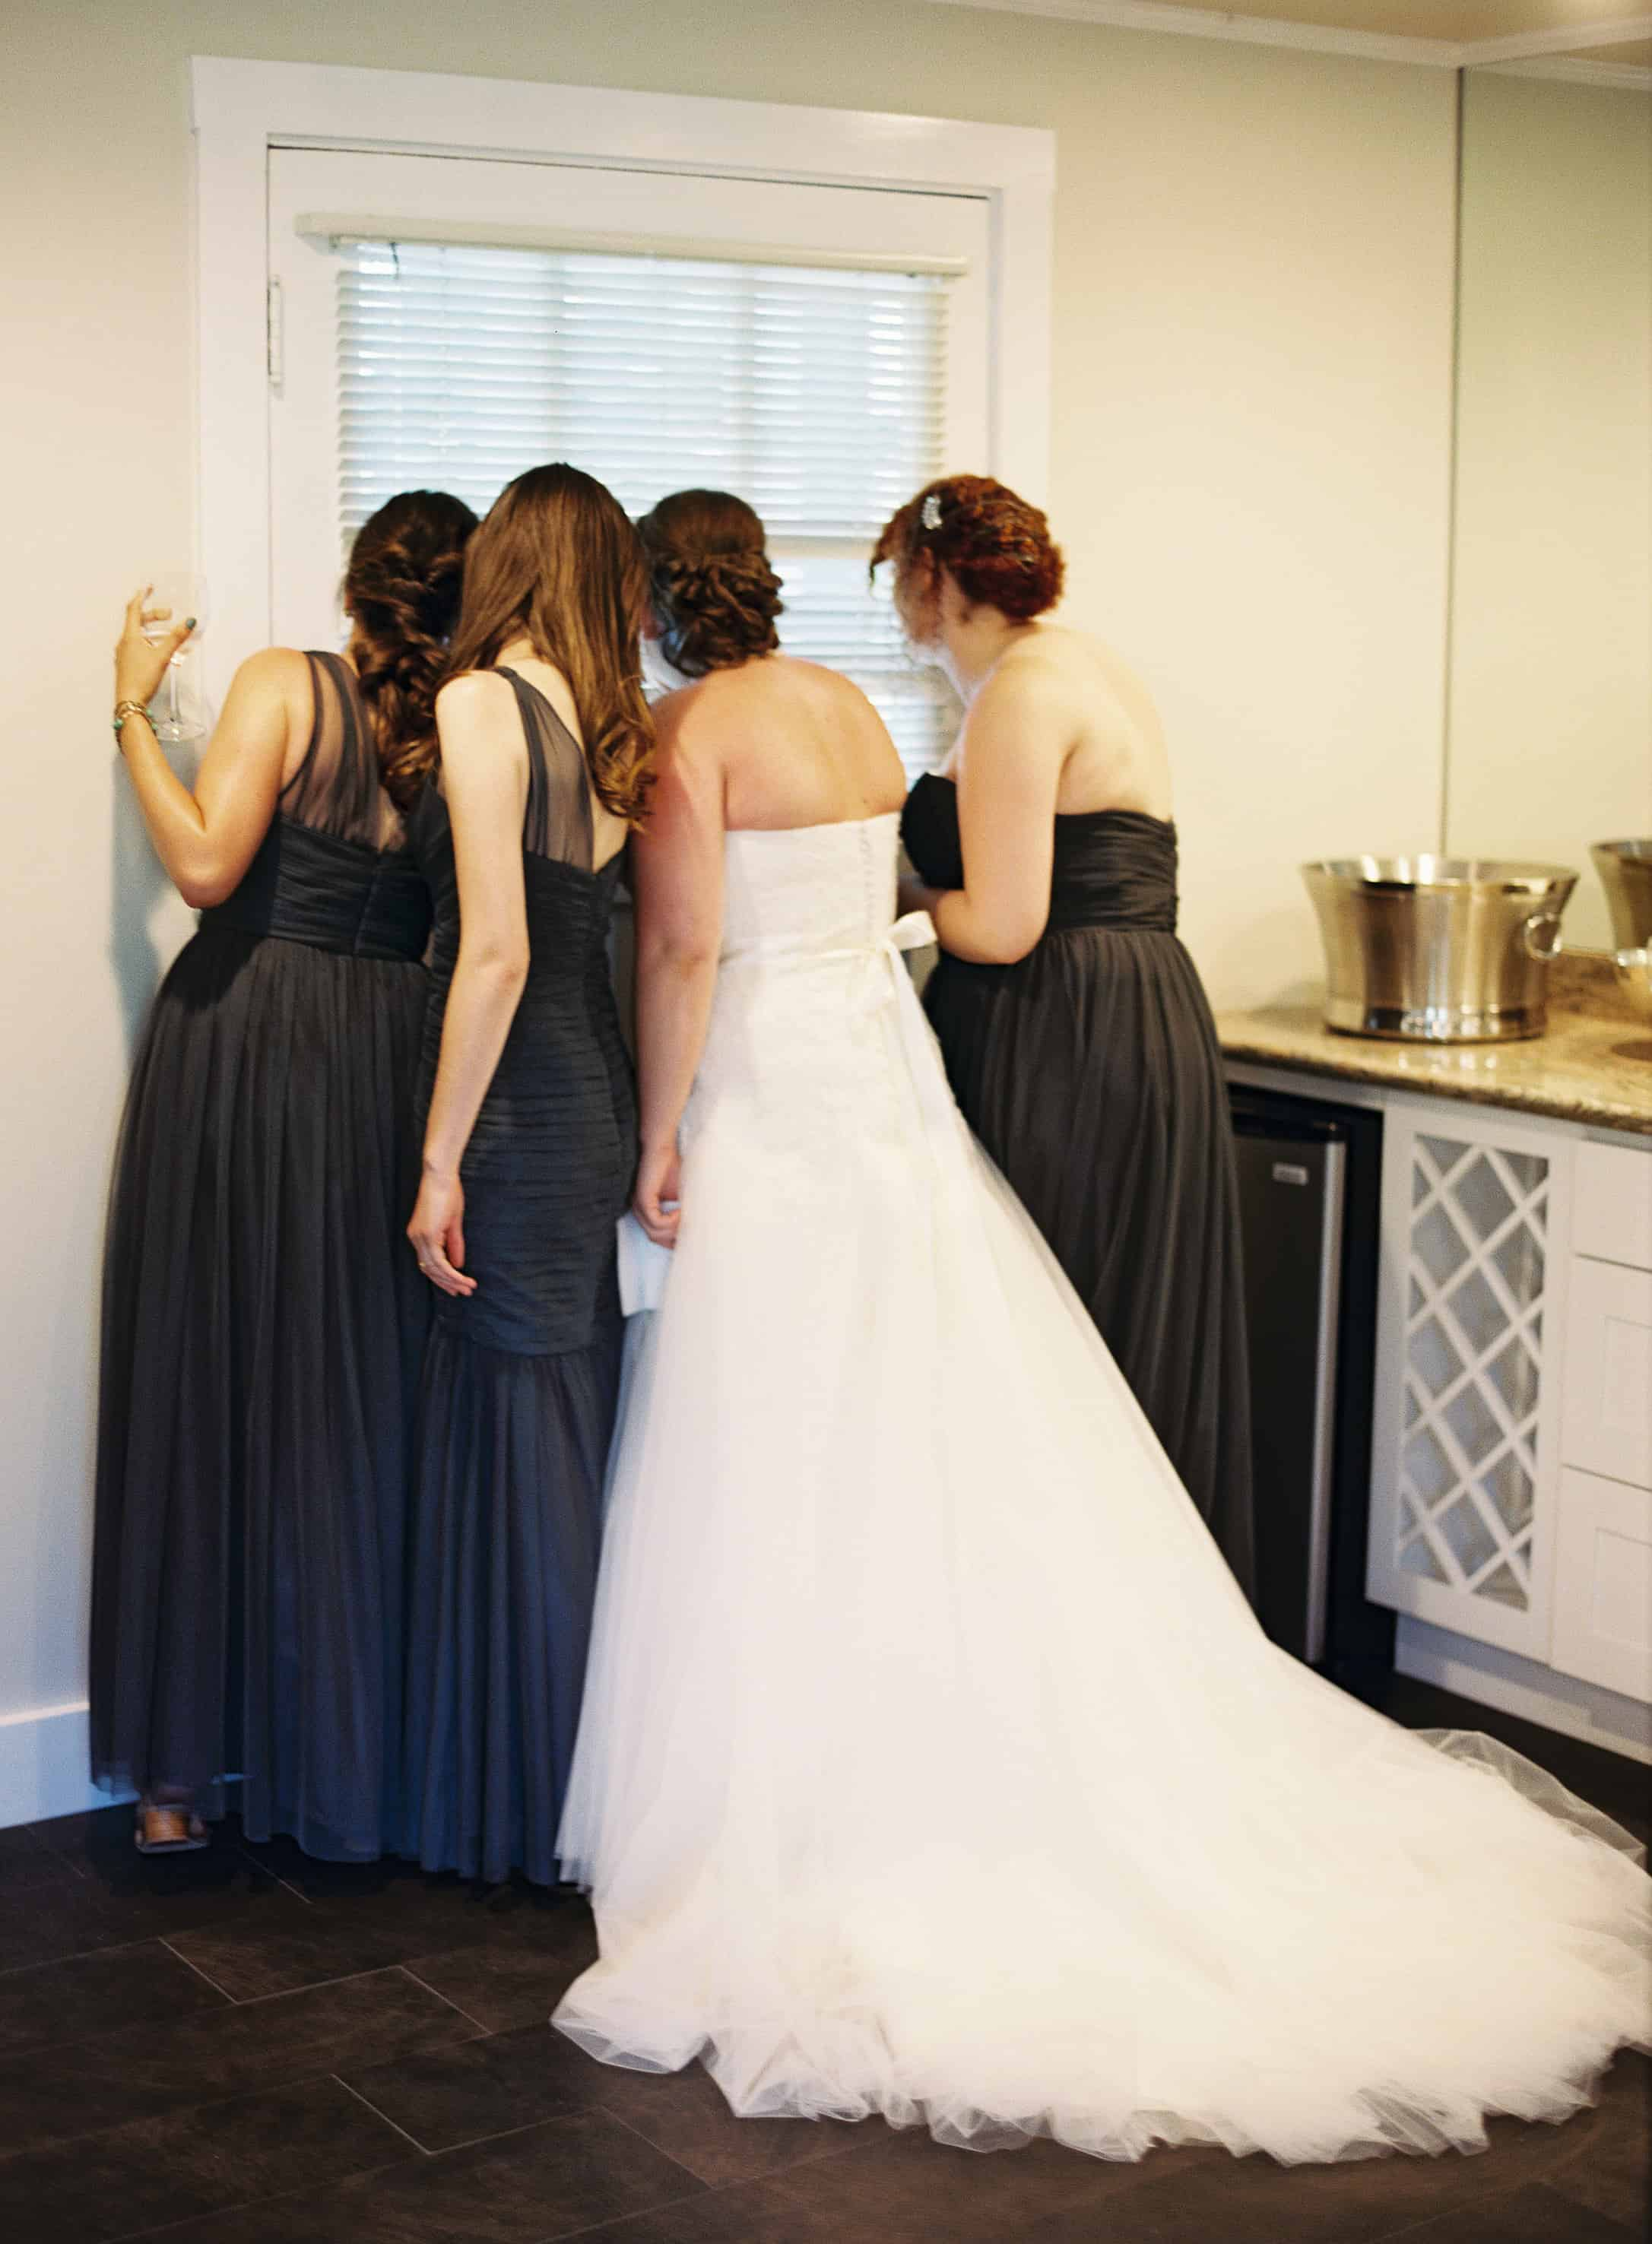 bride and bridesmaids peeking out window